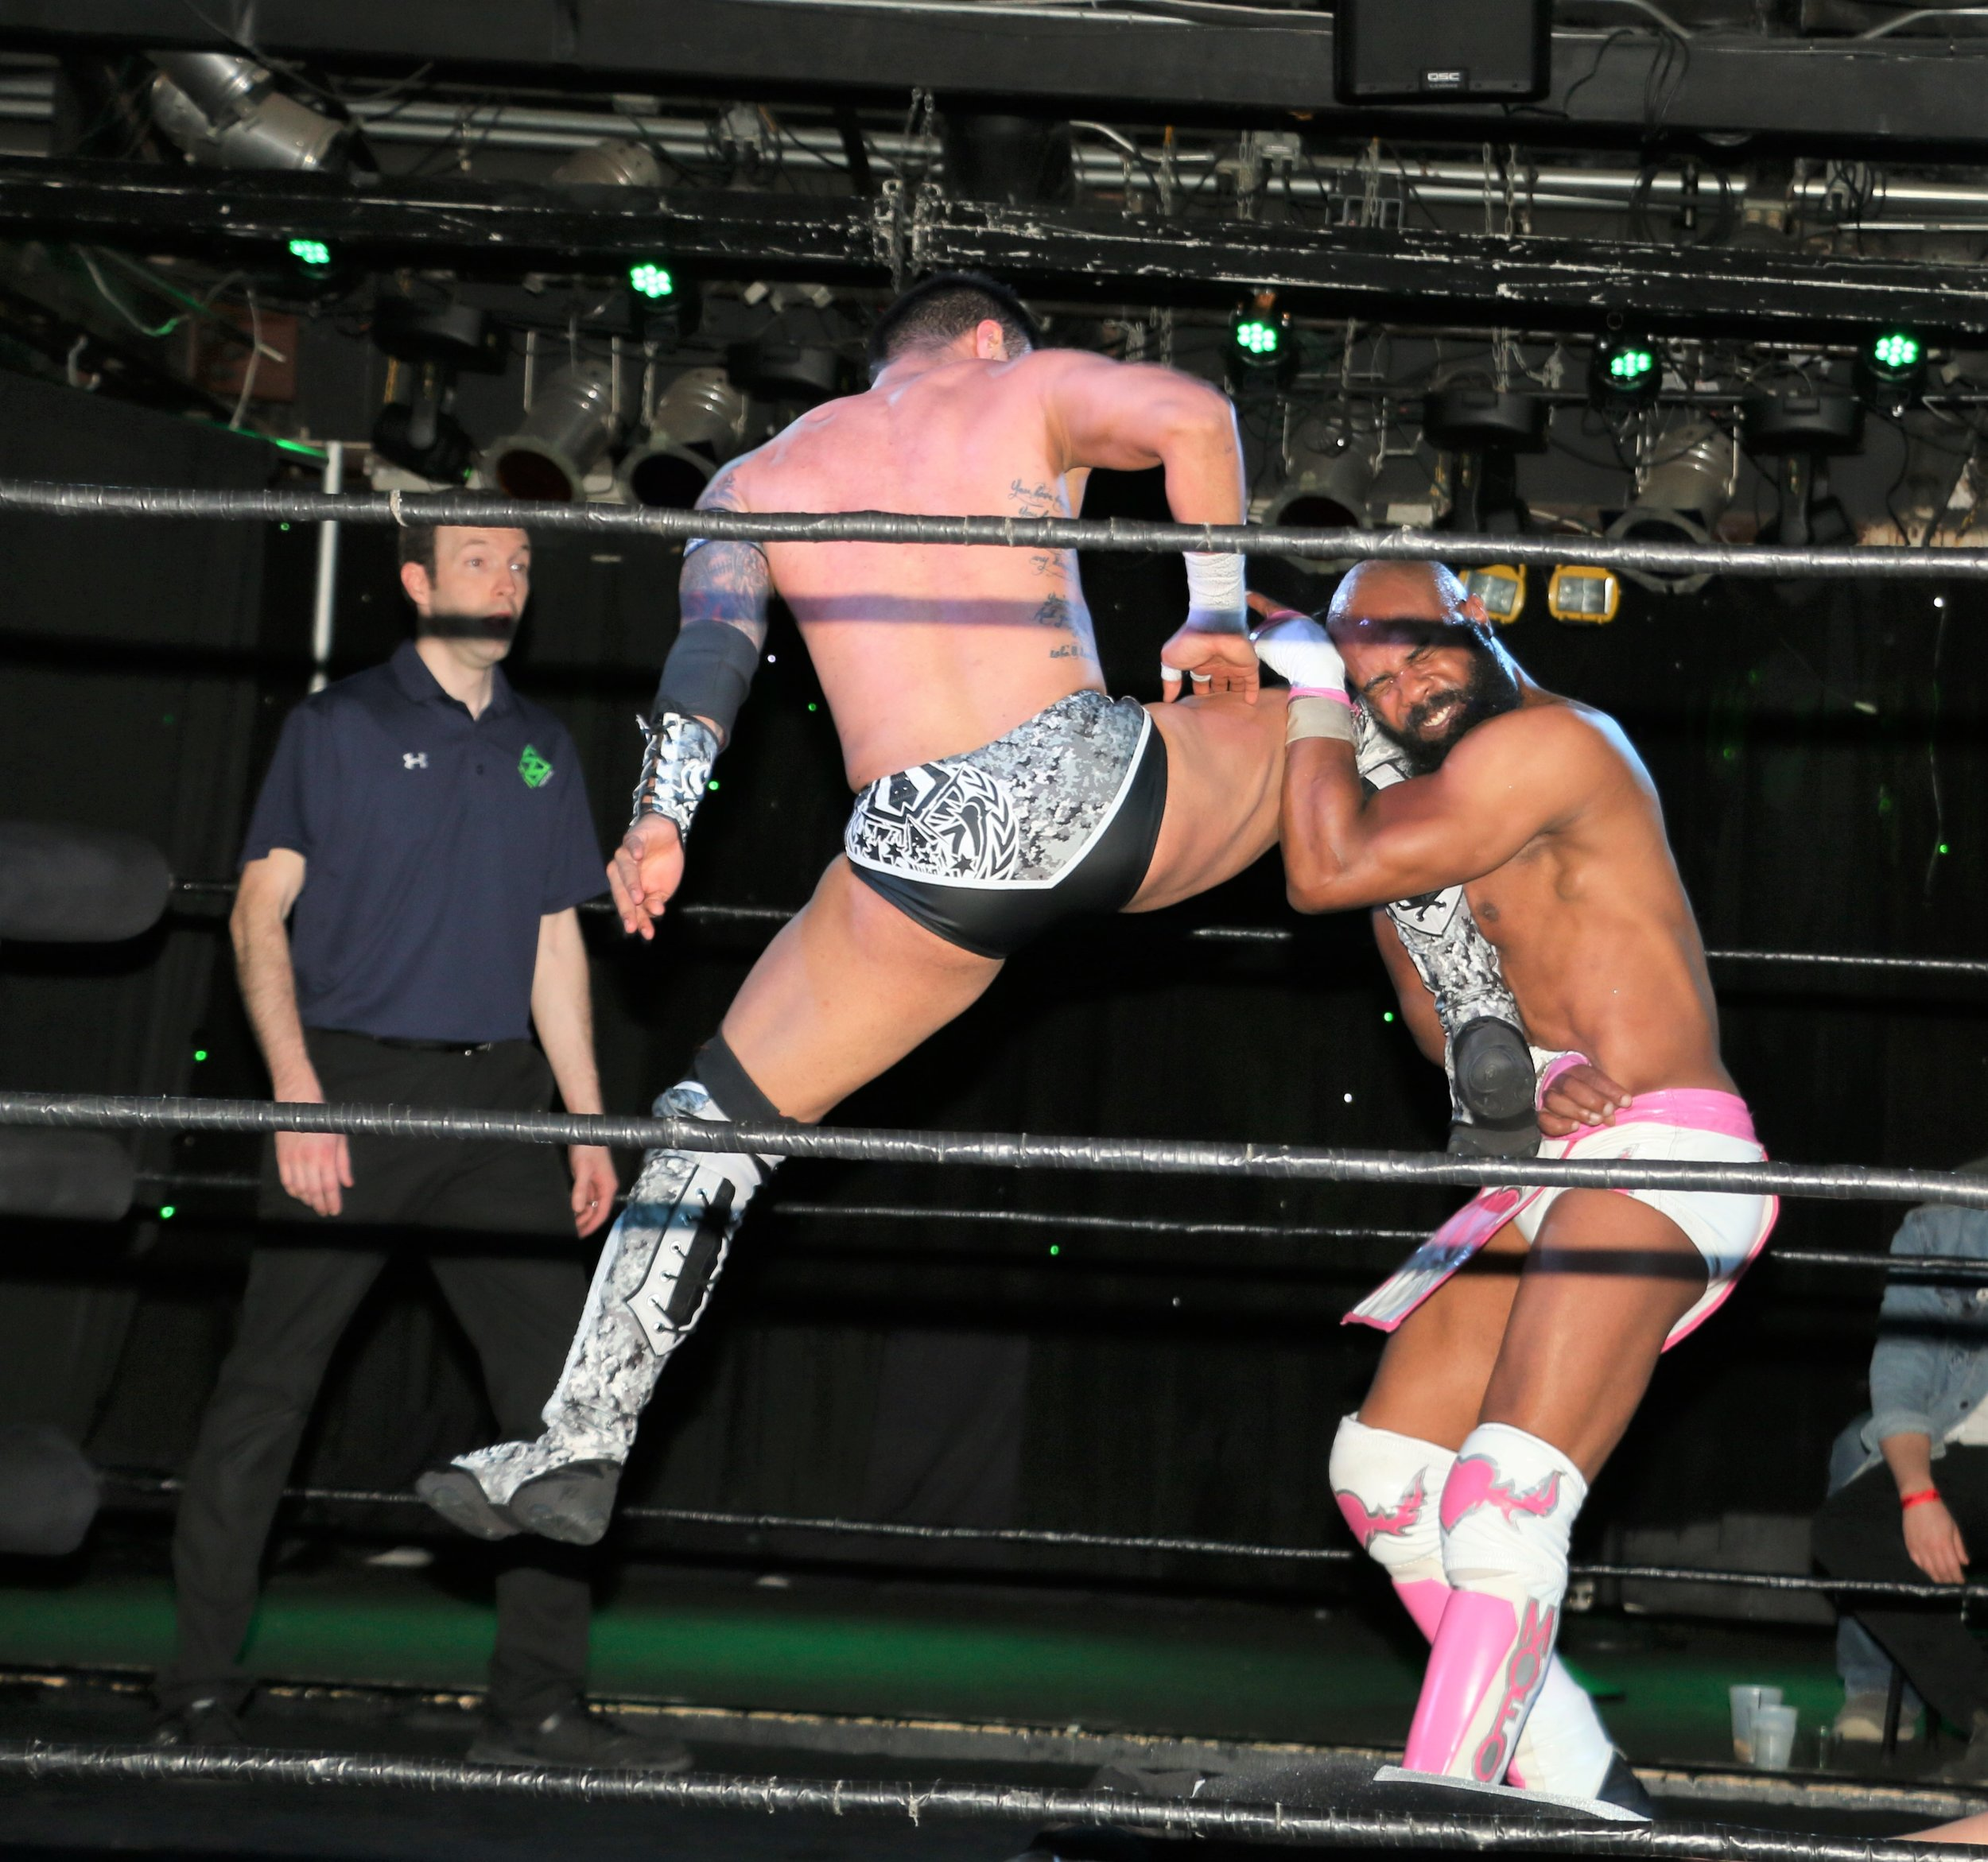 Isaias Velazquez hits a jumping knee on Bryce Benjamin during the tag team match.